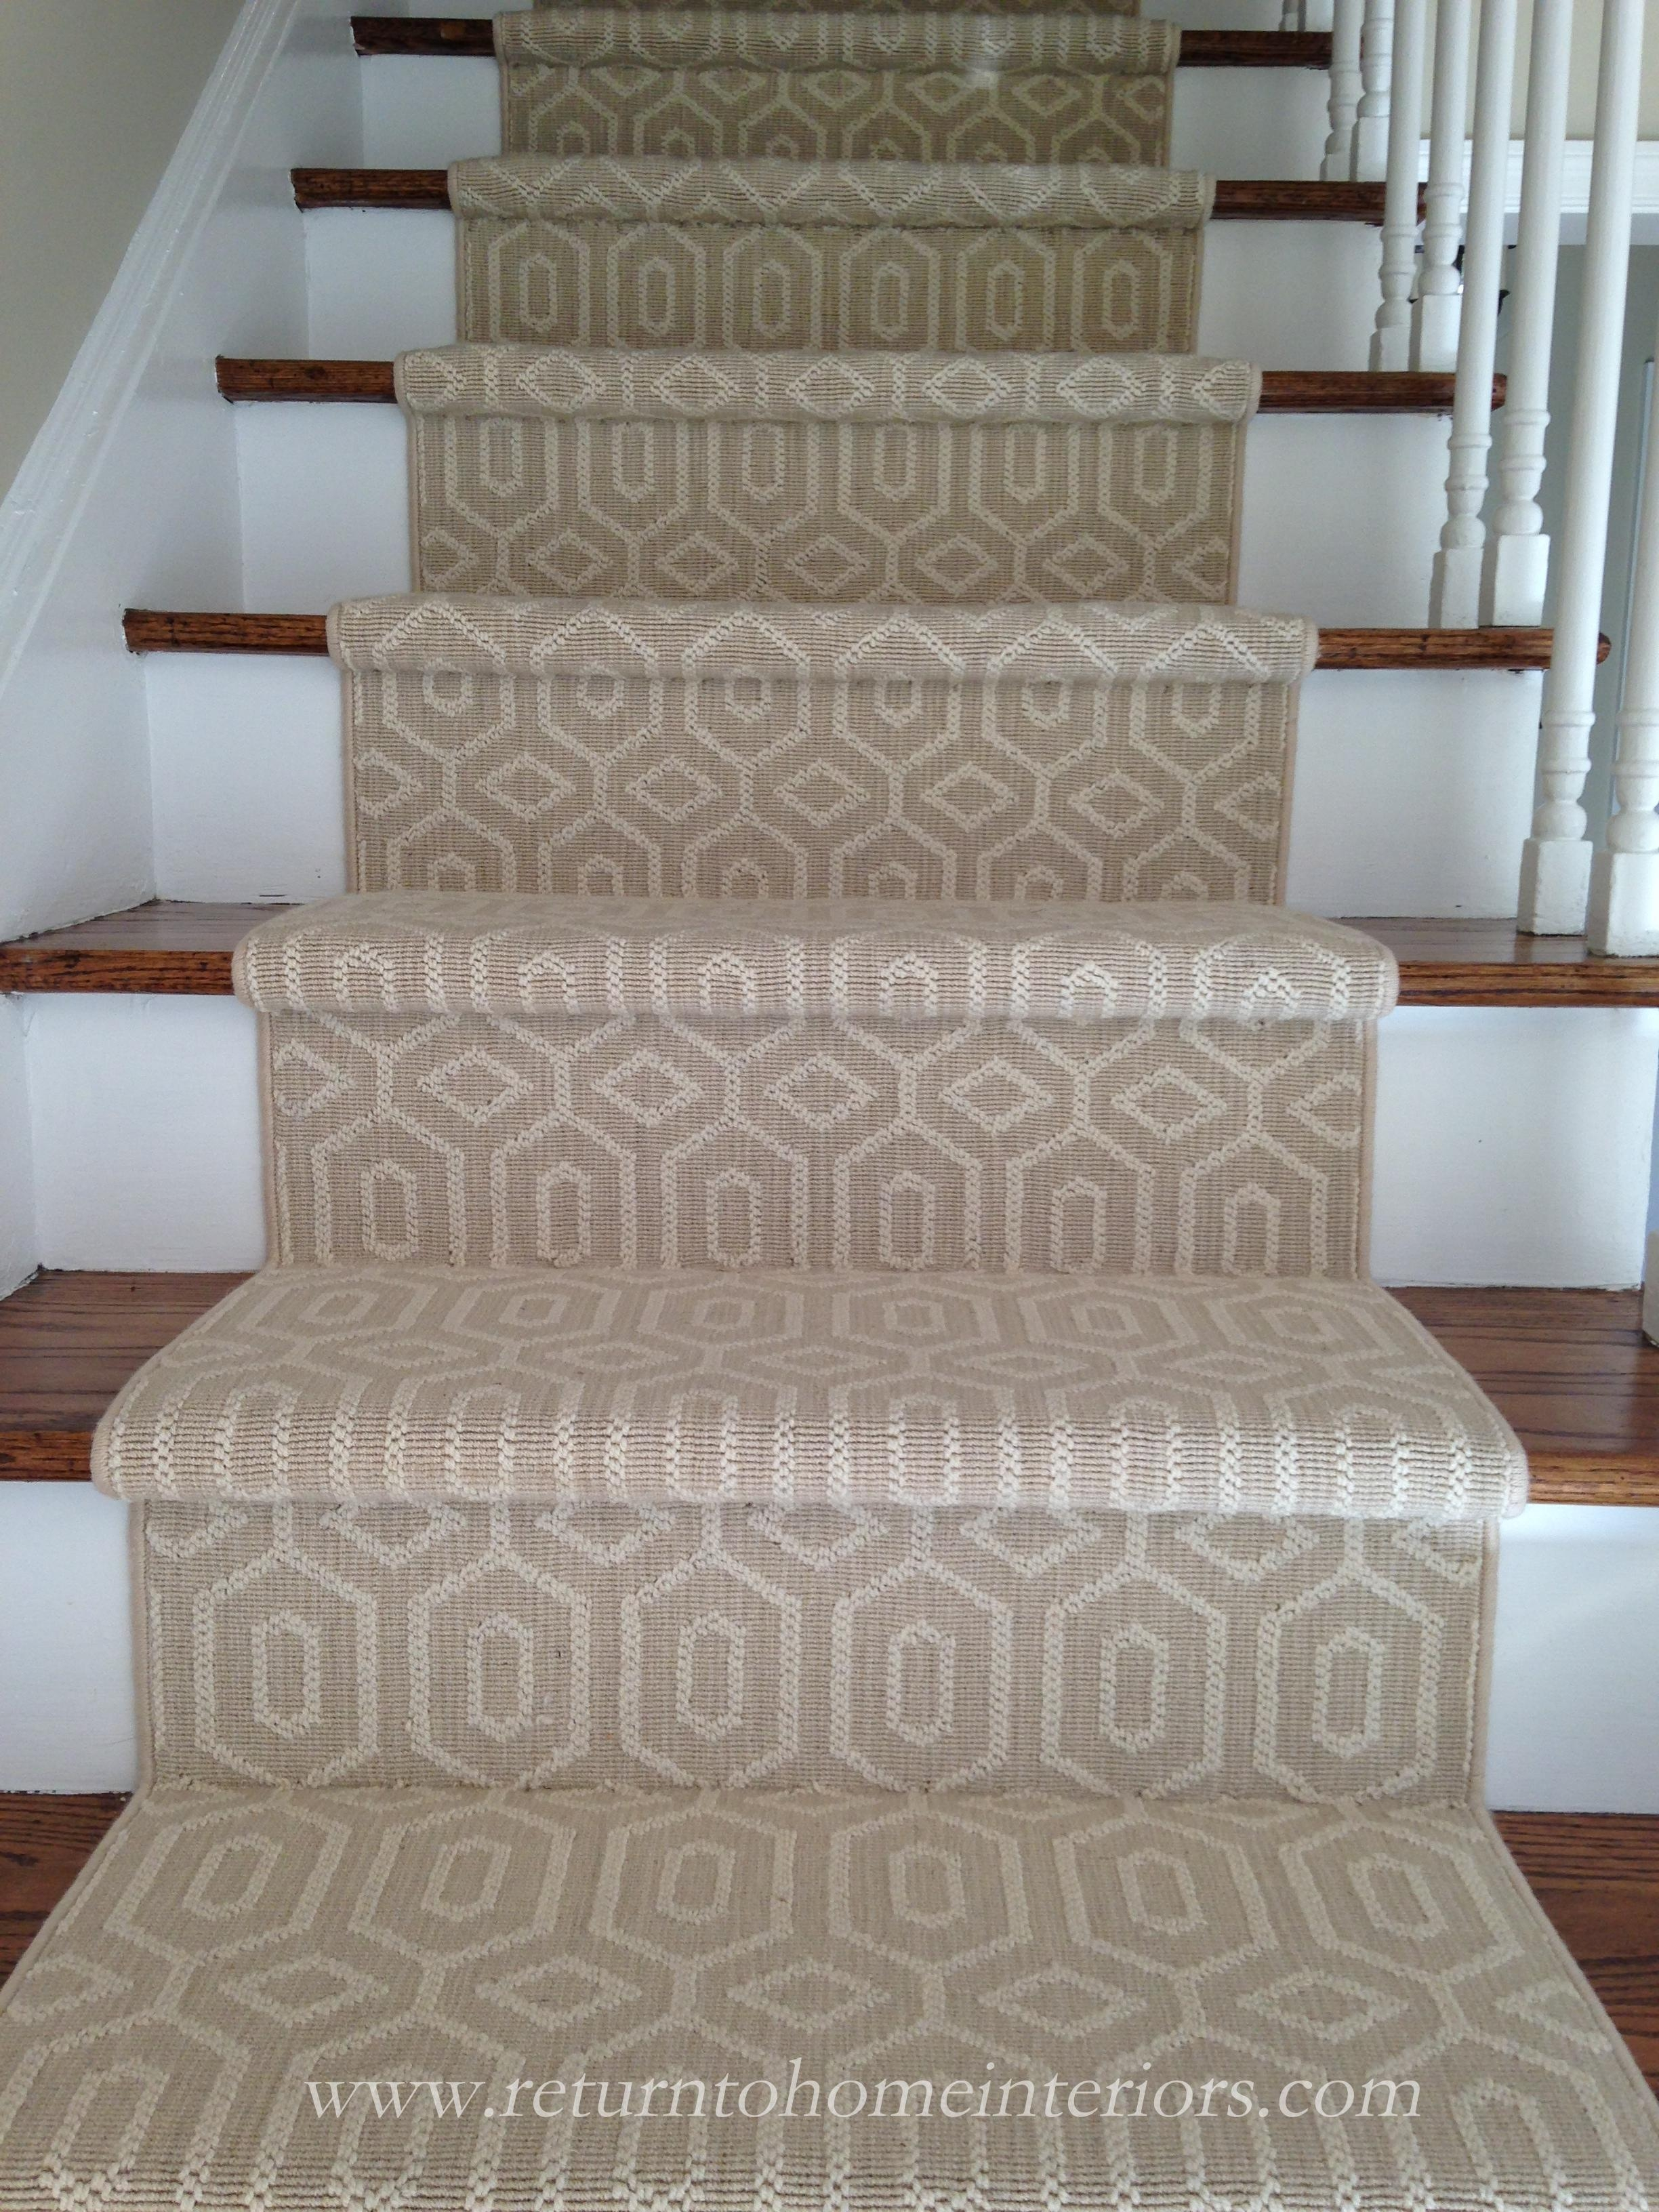 Choosing A Stair Runner Some Inspiration And Lessons Learned | Rug Runners For Stairs | Wood | Antelope | Hallway | Persian | Mid Century Modern